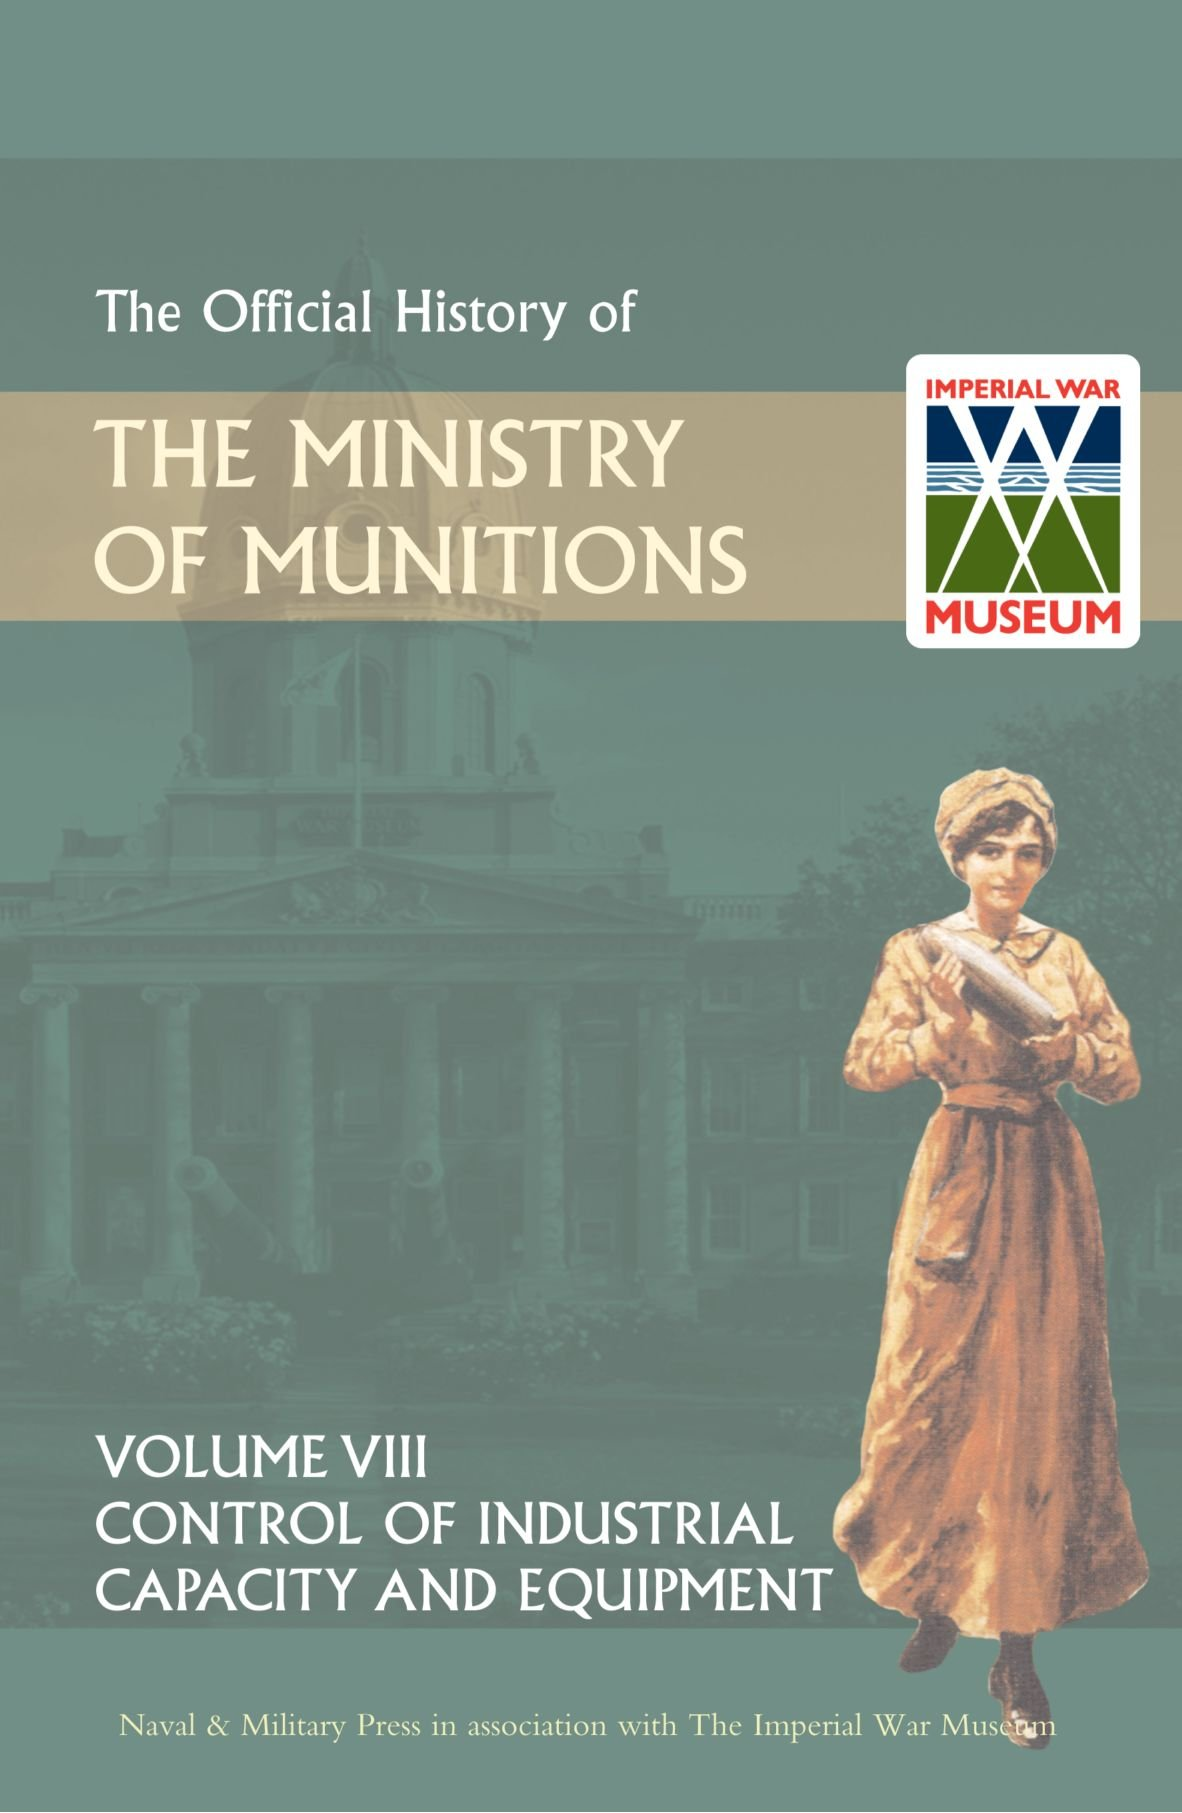 The Official History of THE MINISTRY OF MUNITIONS VOLUME VIII Control of Industrial Capacity and Equipment PDF